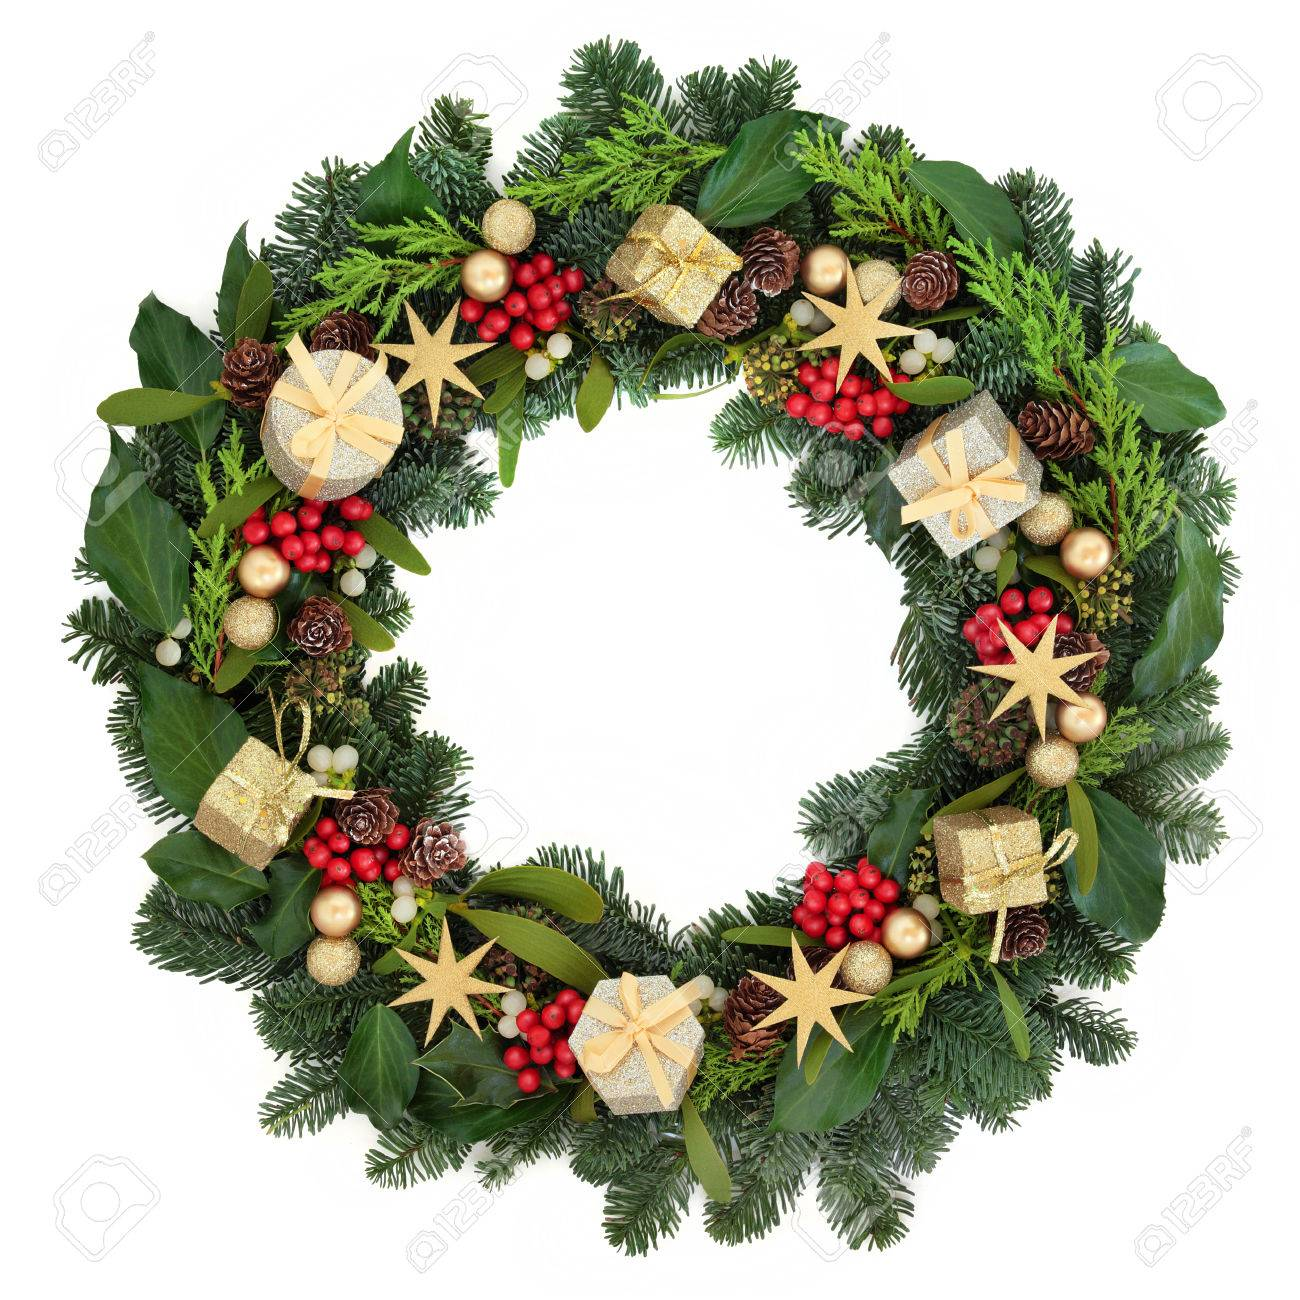 Christmas Wreath With Gold Bauble Decorations Holly Ivy Mistletoe